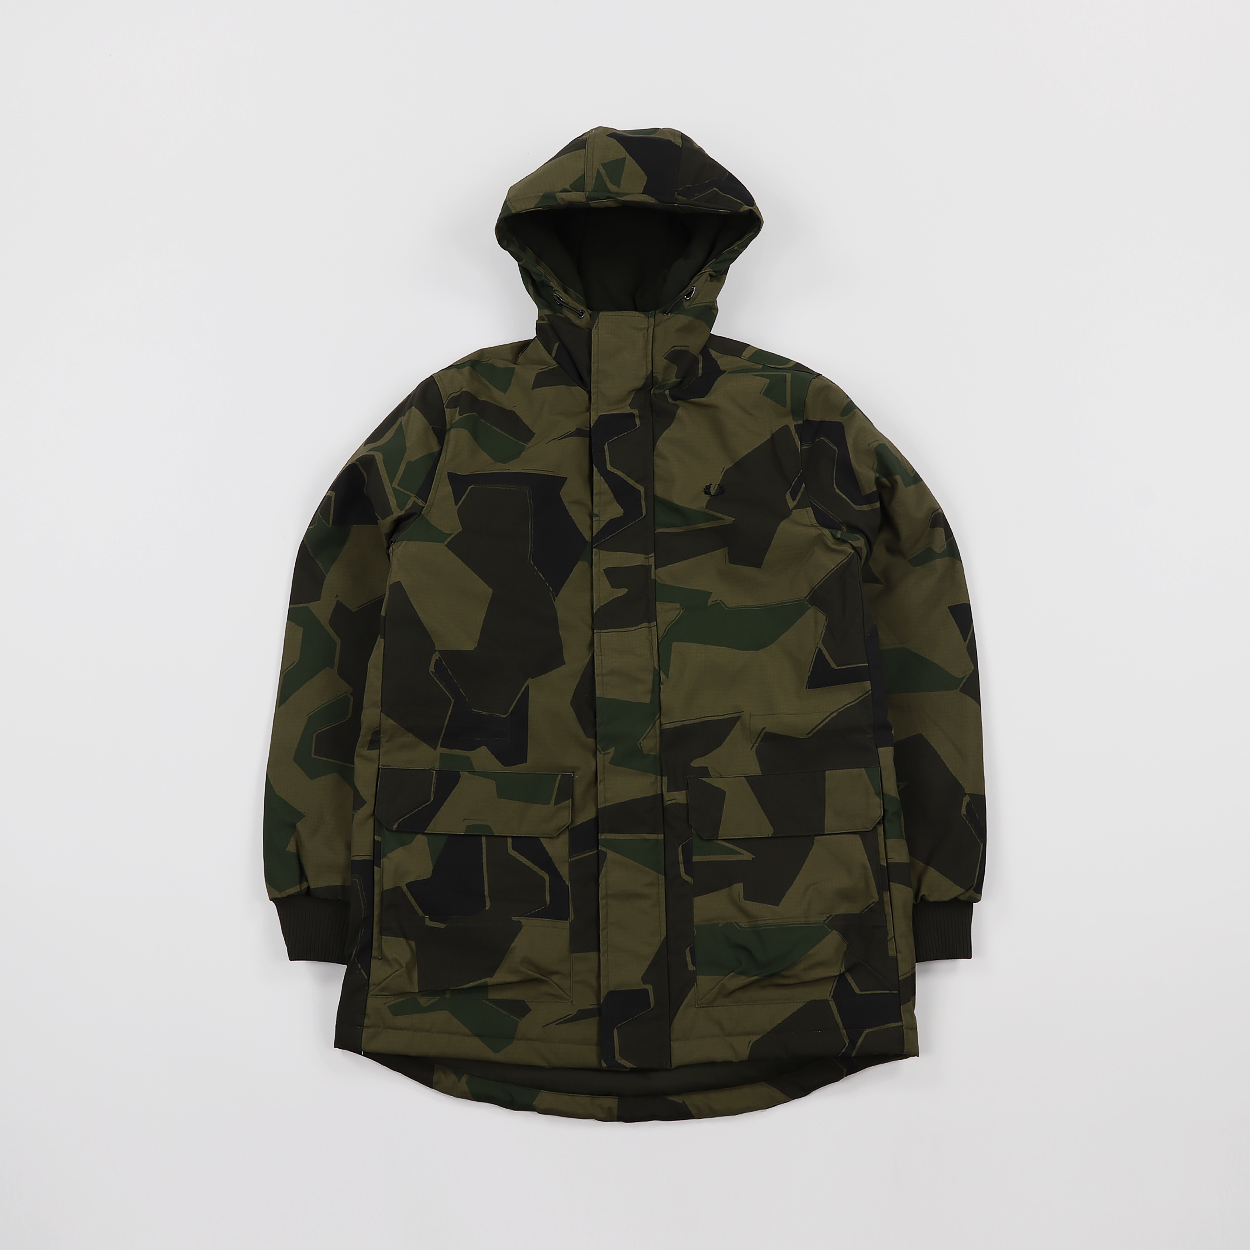 f318d451 Fred Perry x Arktis Mens Stockport Parka Jacket AK Woodland Camo £155.00